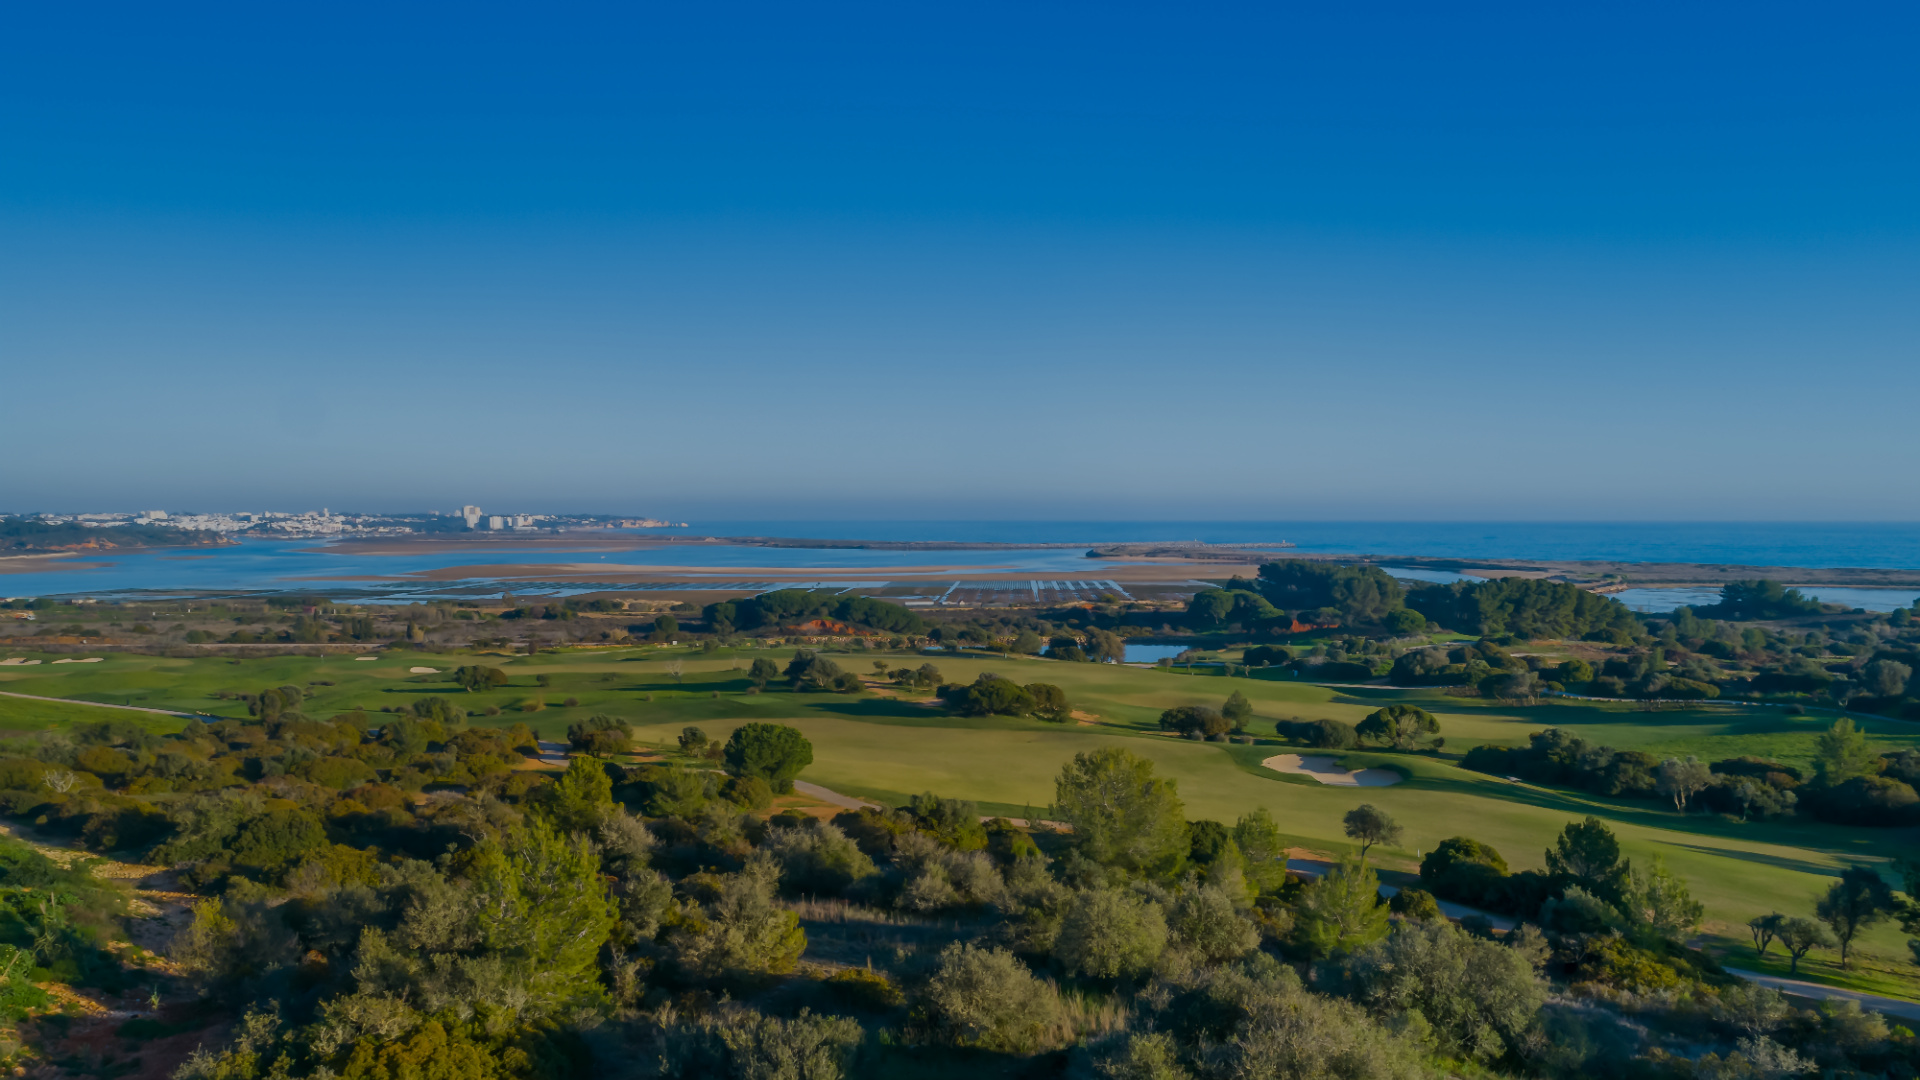 Golf course at Palmares surrounded by trees